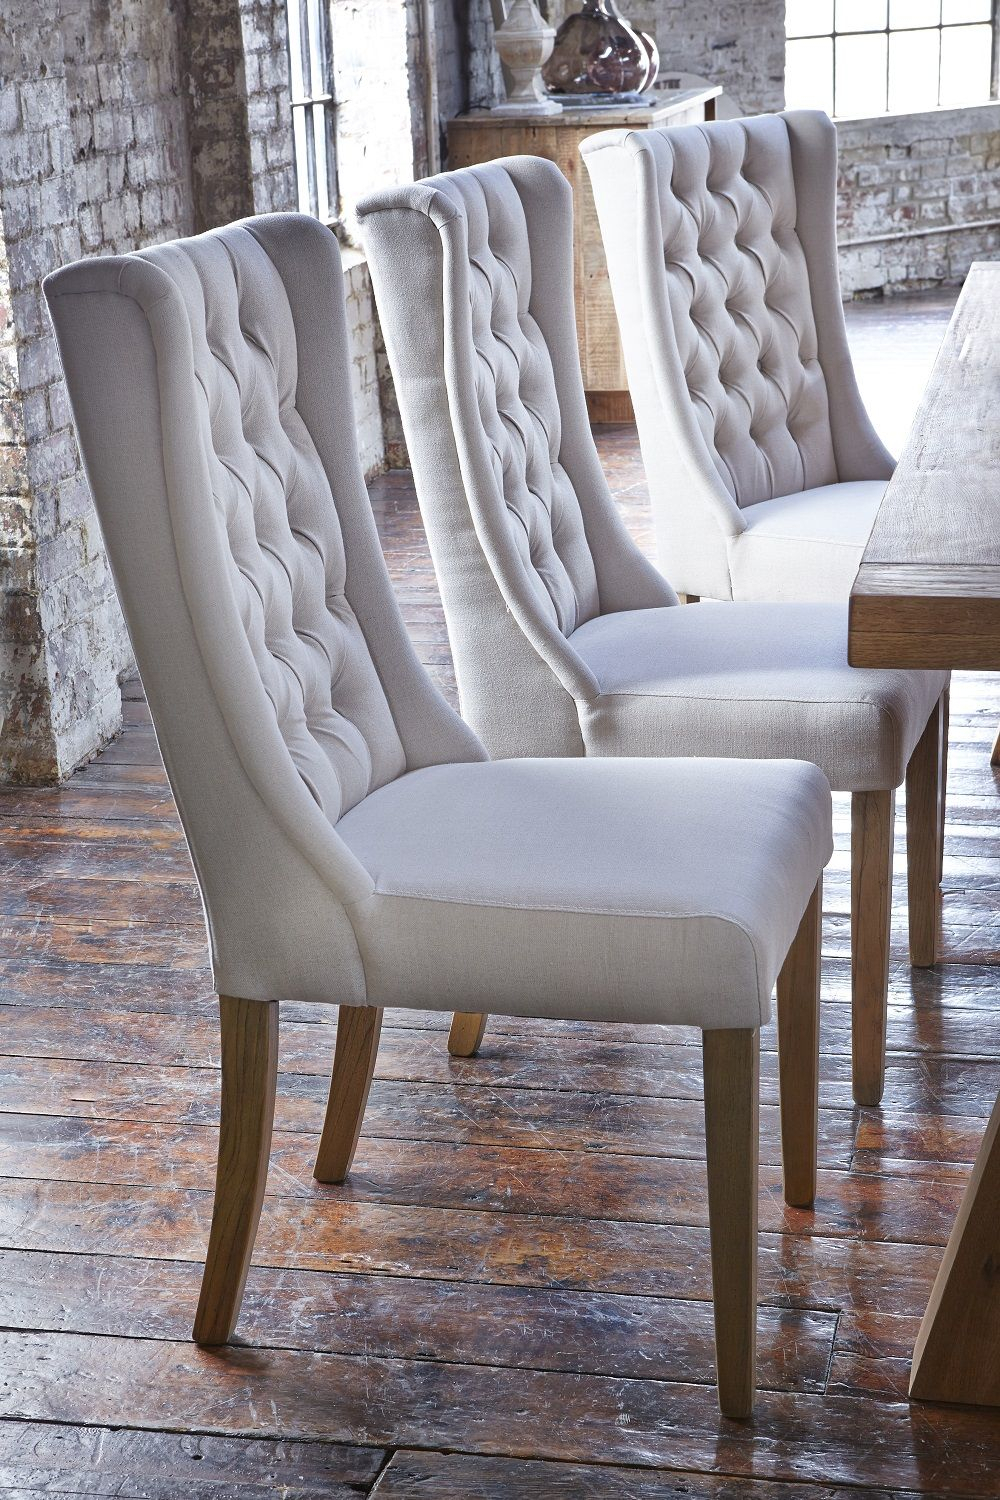 Kipling Fabric Dining Chair, Cream & Oak – Barker Within Aime Upholstered Parsons Chairs In Beige (View 9 of 15)